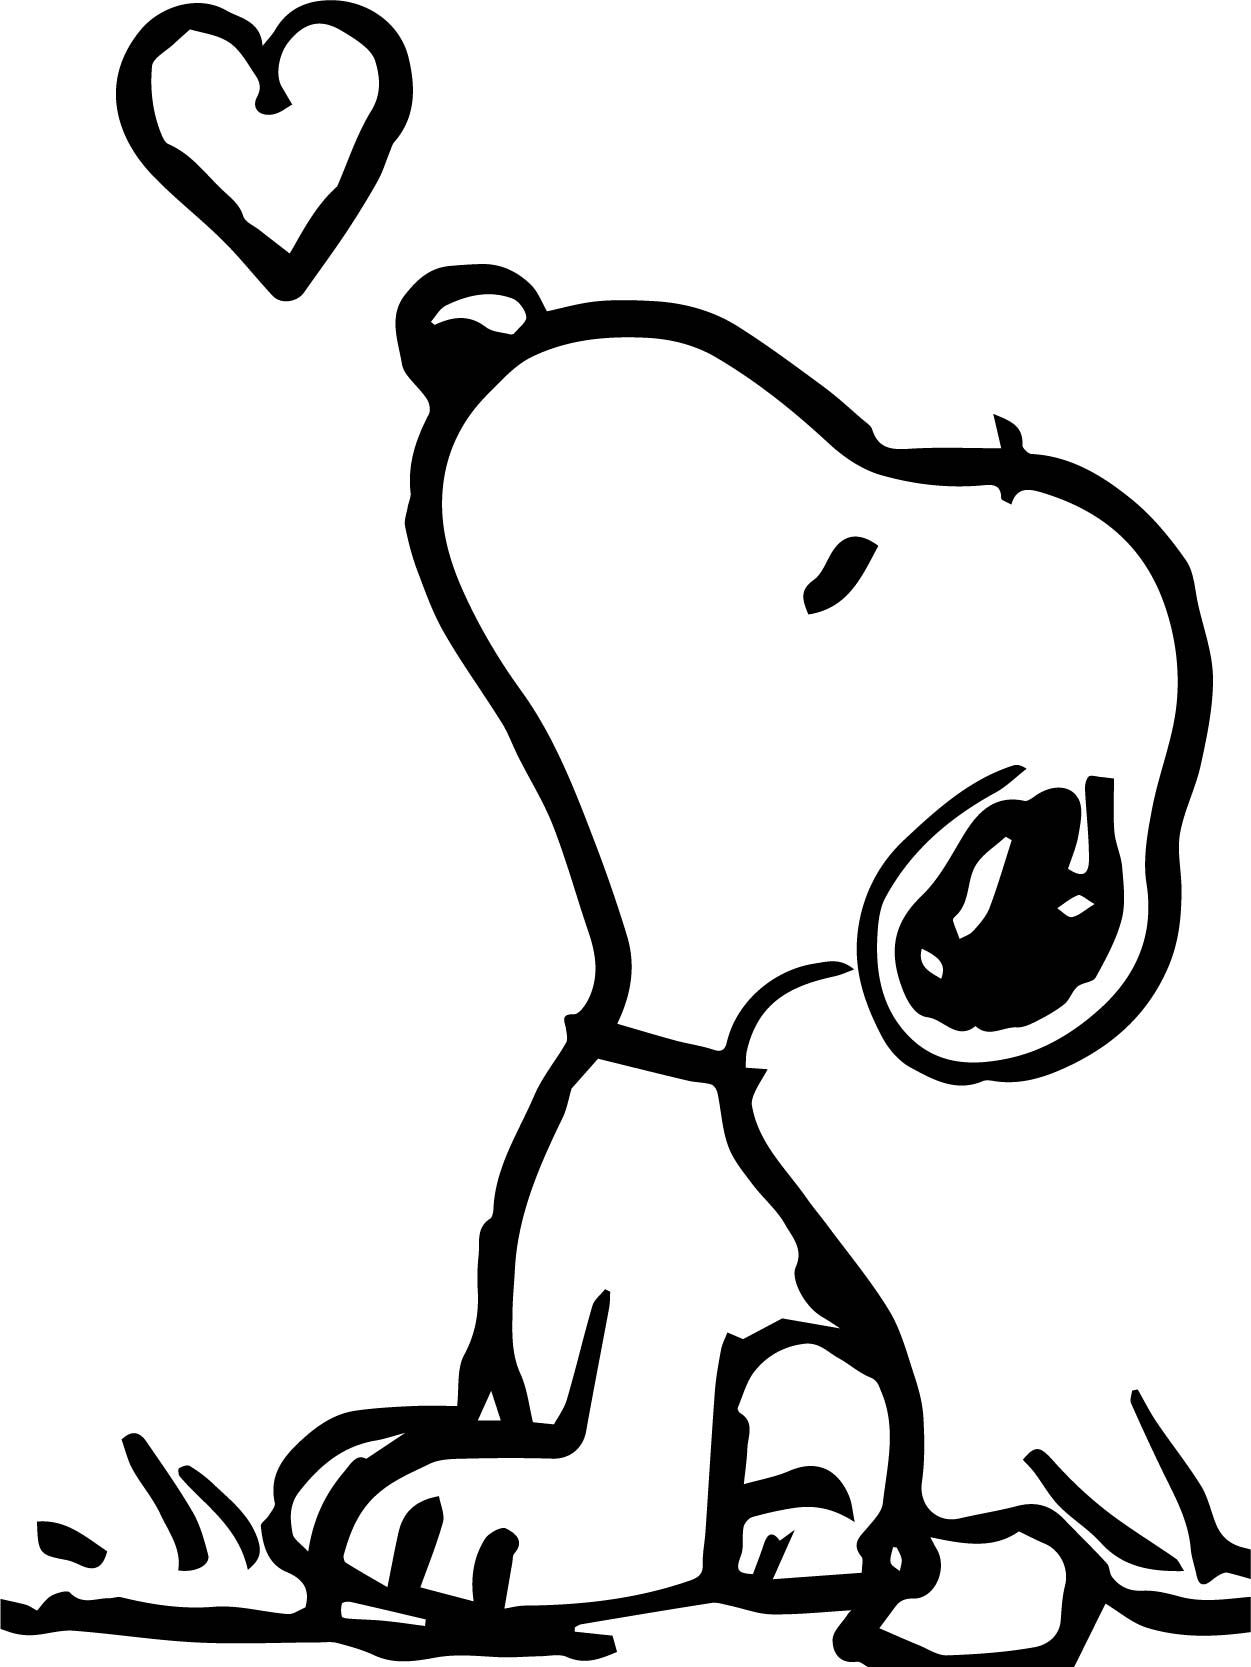 cool snoopy look fly heart coloring page  heart coloring